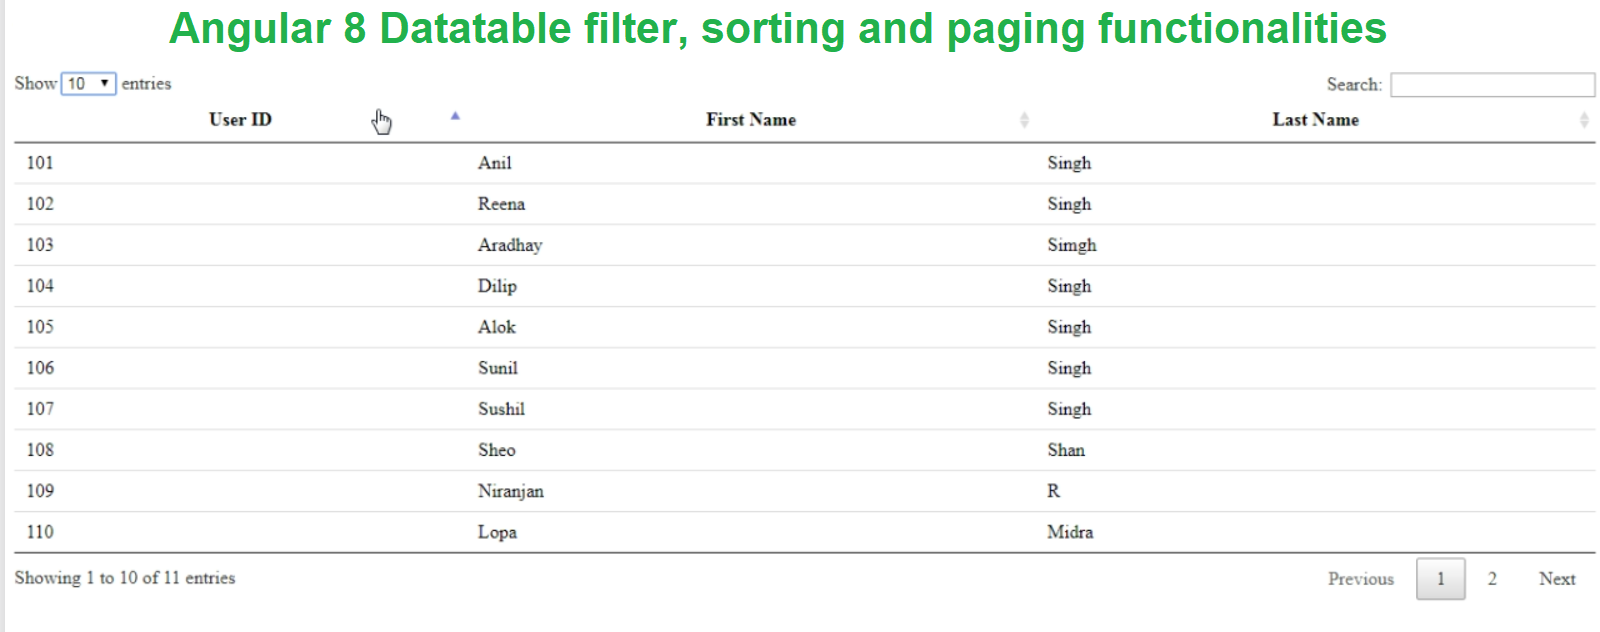 Angular 8 Datatables filter, sorting and paging